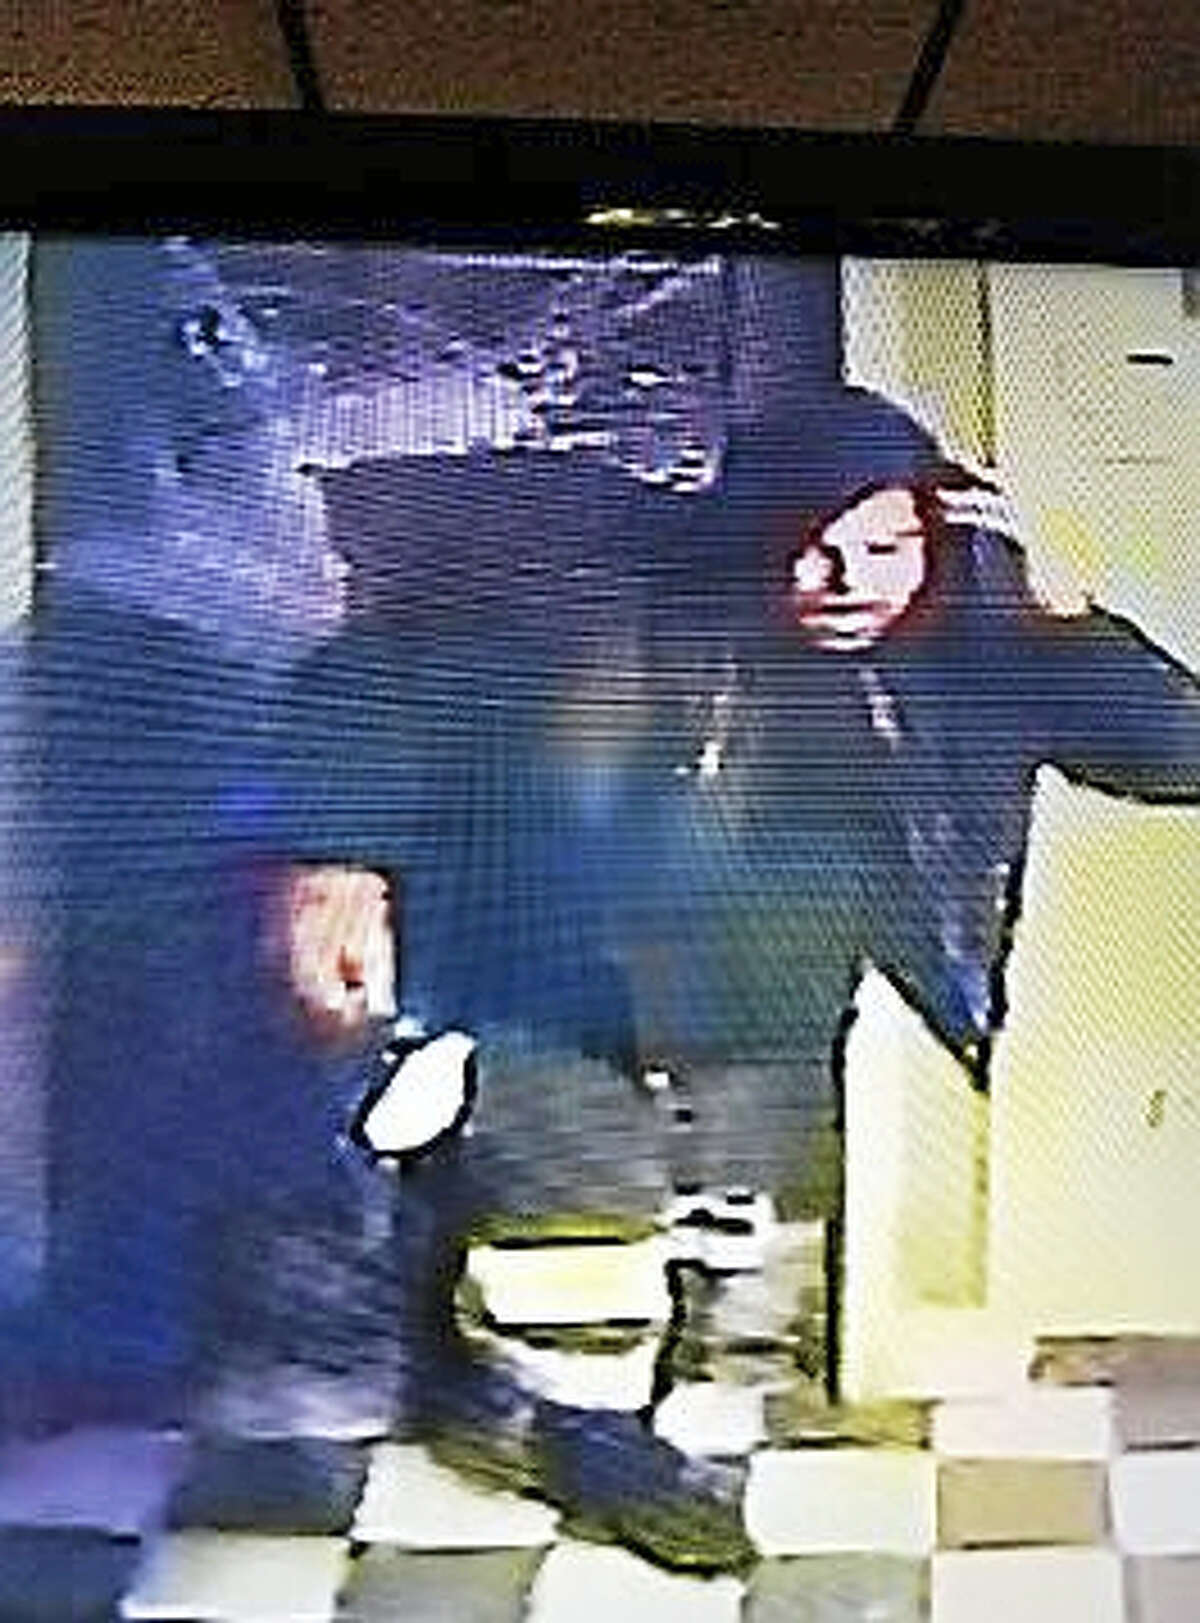 New Haven police are looking for help identifying the suspect in this surveillance photo, who is accused of committing several burglaries in the city.